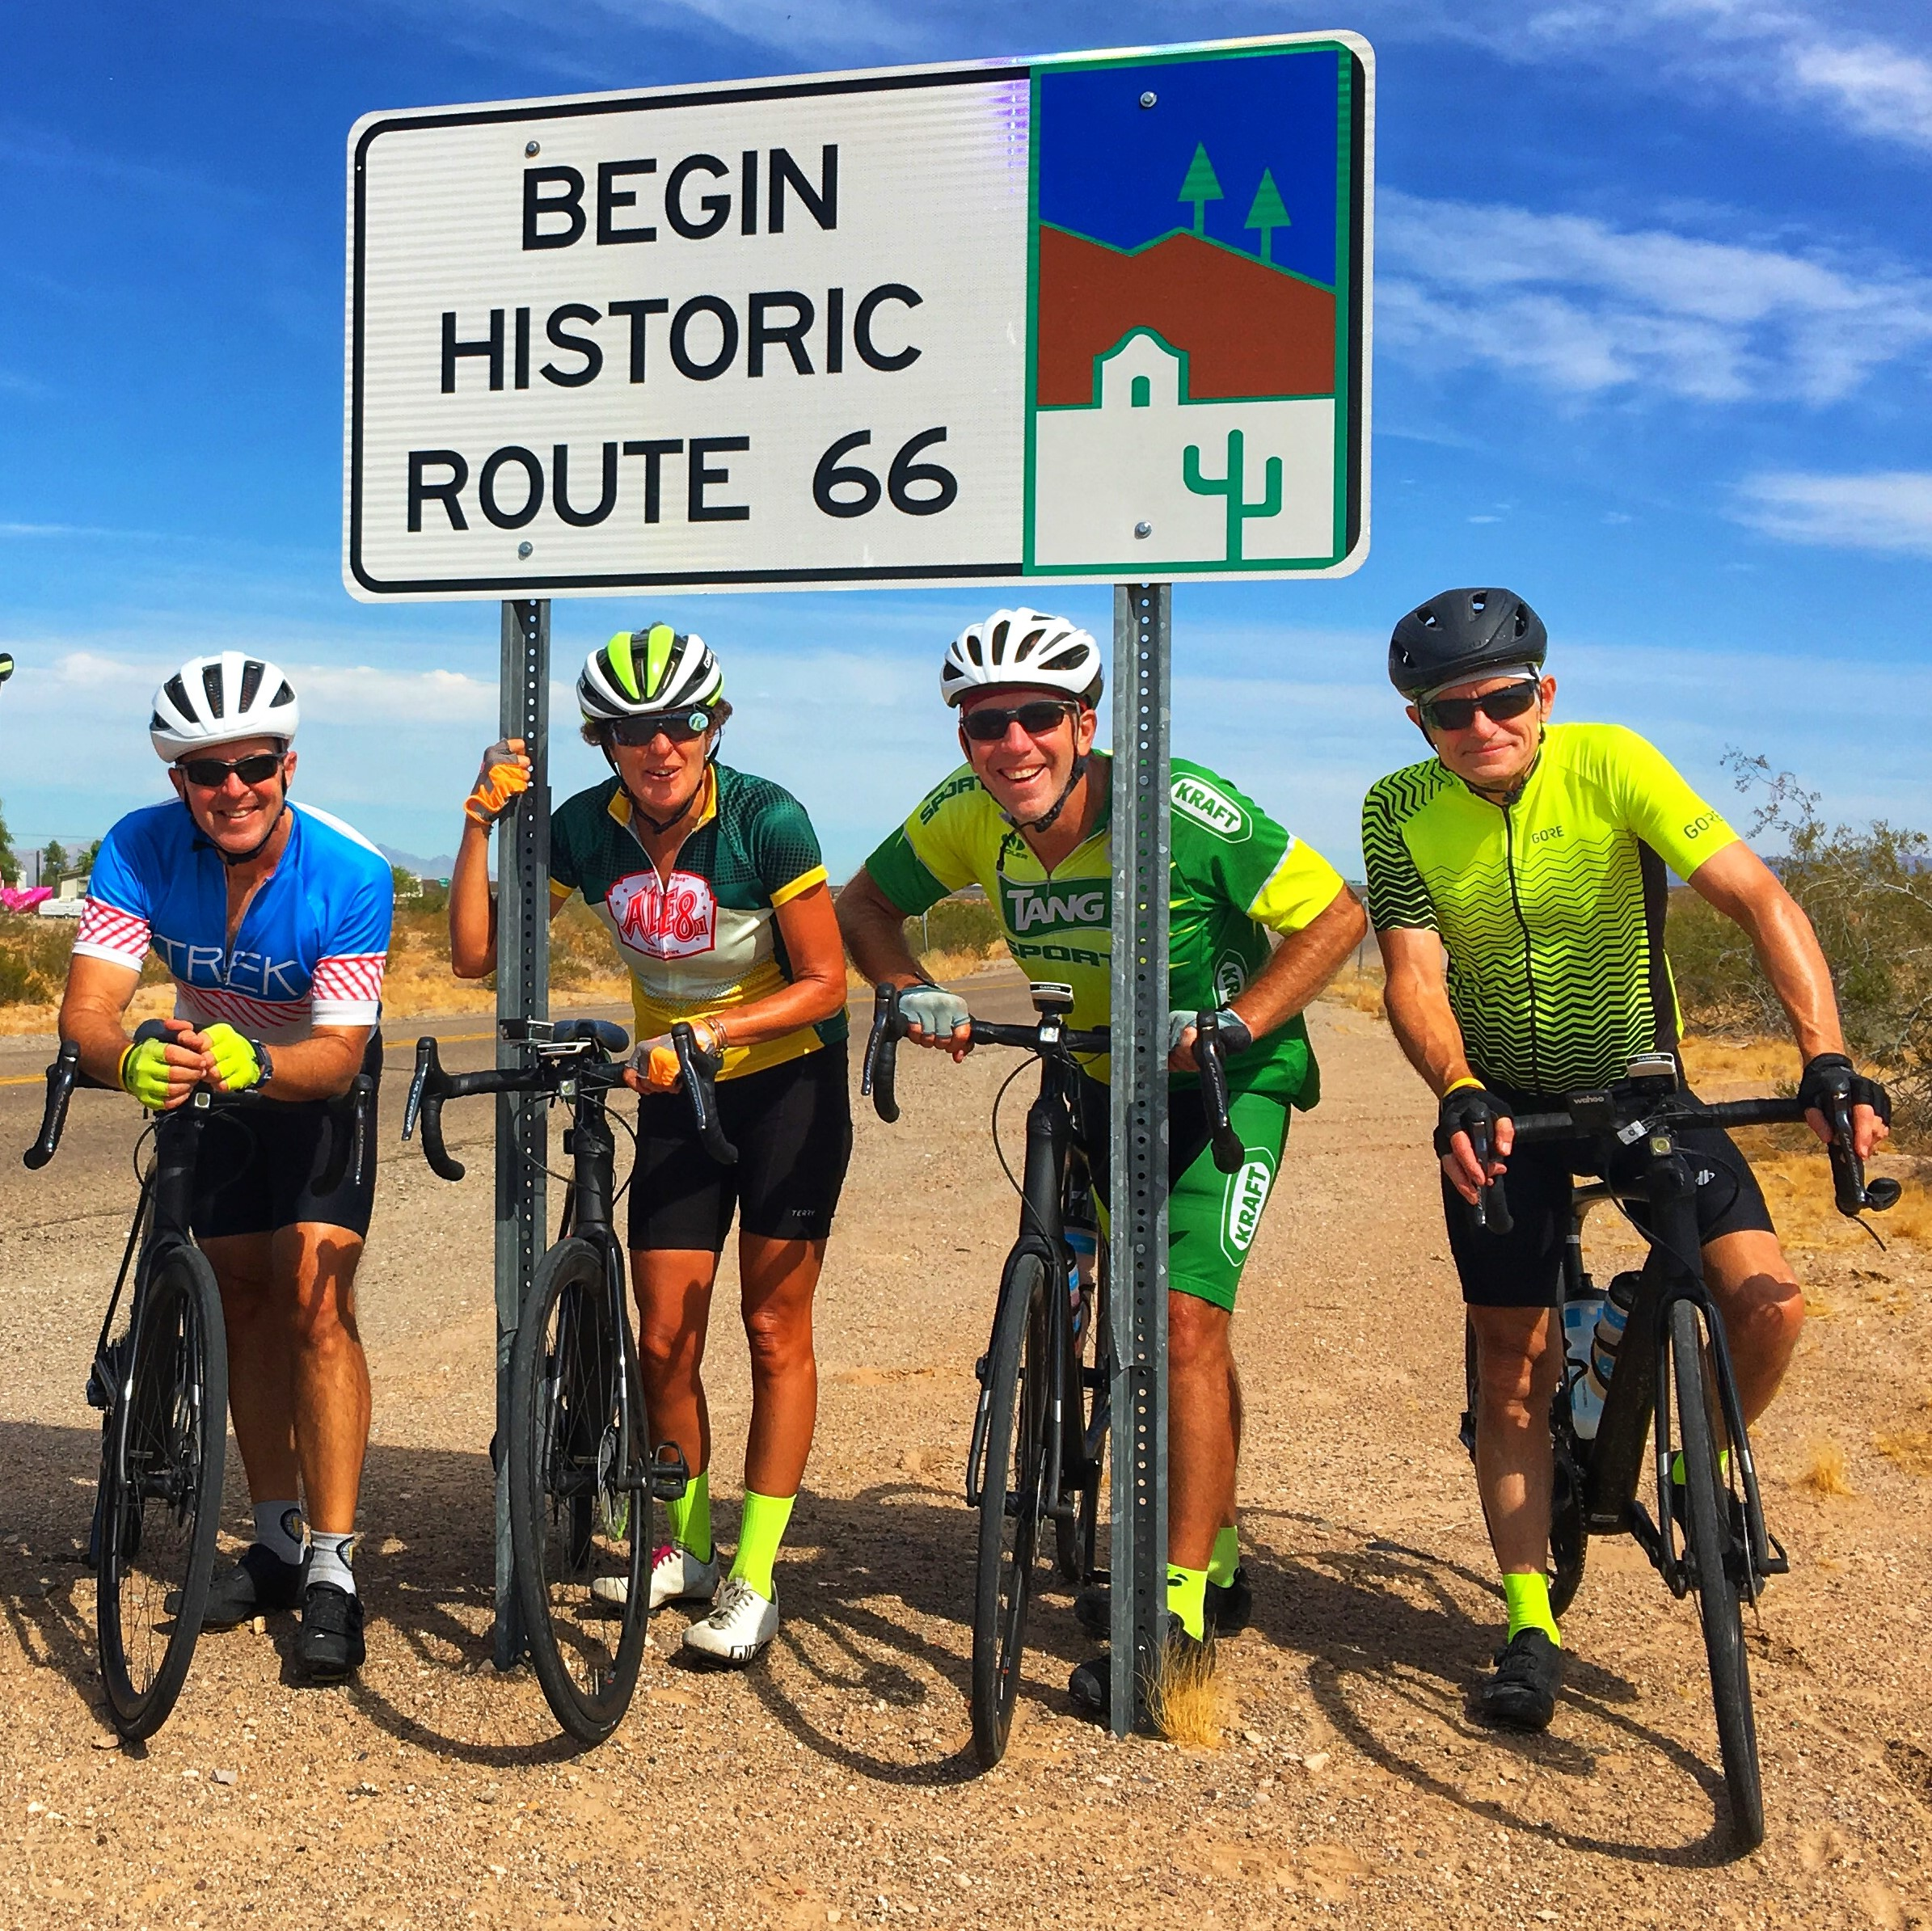 Biking My Way Through My Bucket List. Blog by FitNation Gurnee Member, George Inman. View George's full photo gallery on Facebook!